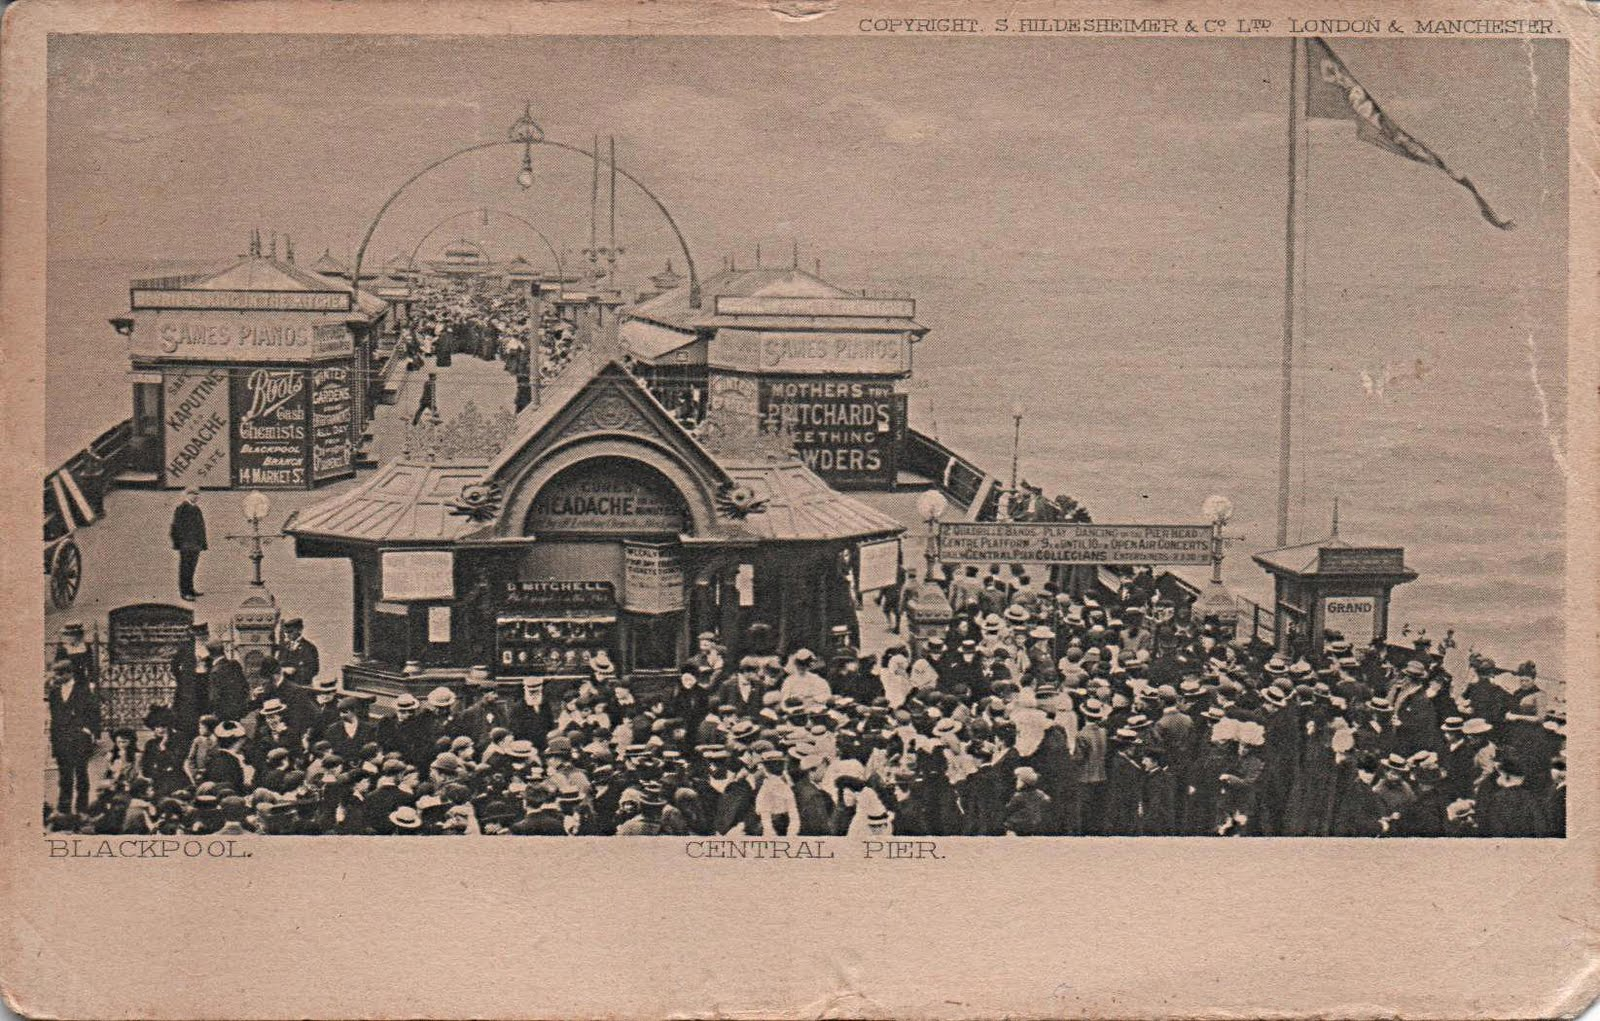 vintage postcard of Central Pier, Blackpool